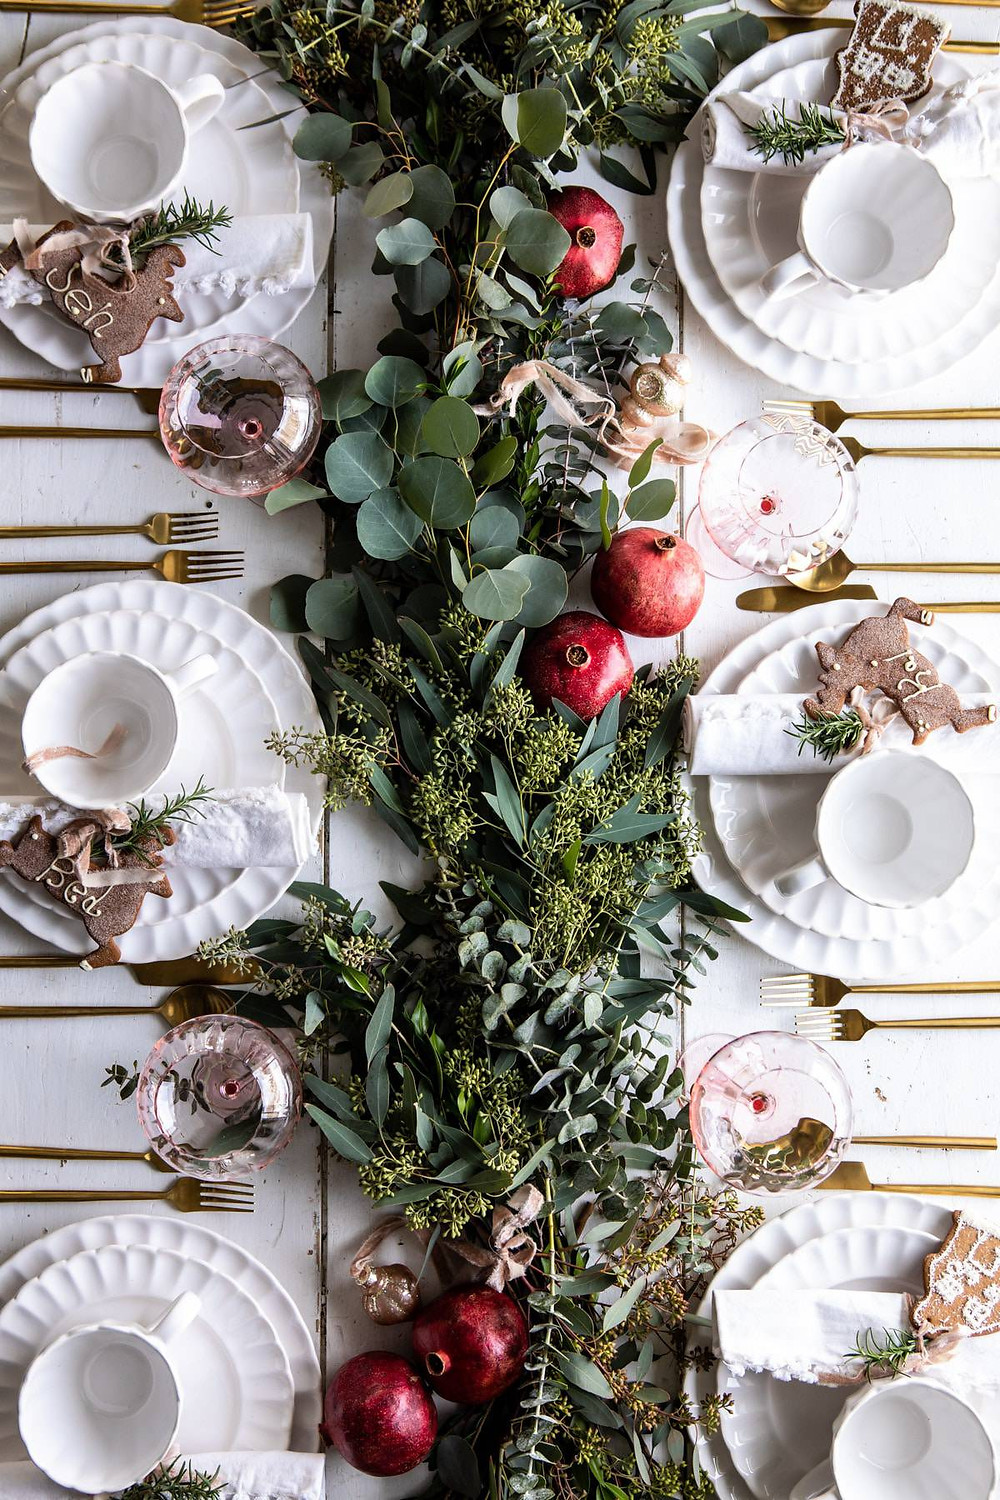 A simple and modern Christmas holiday table decorated with greenery and red pomegranate fruits on a white wood table with white china and gold cutlery.